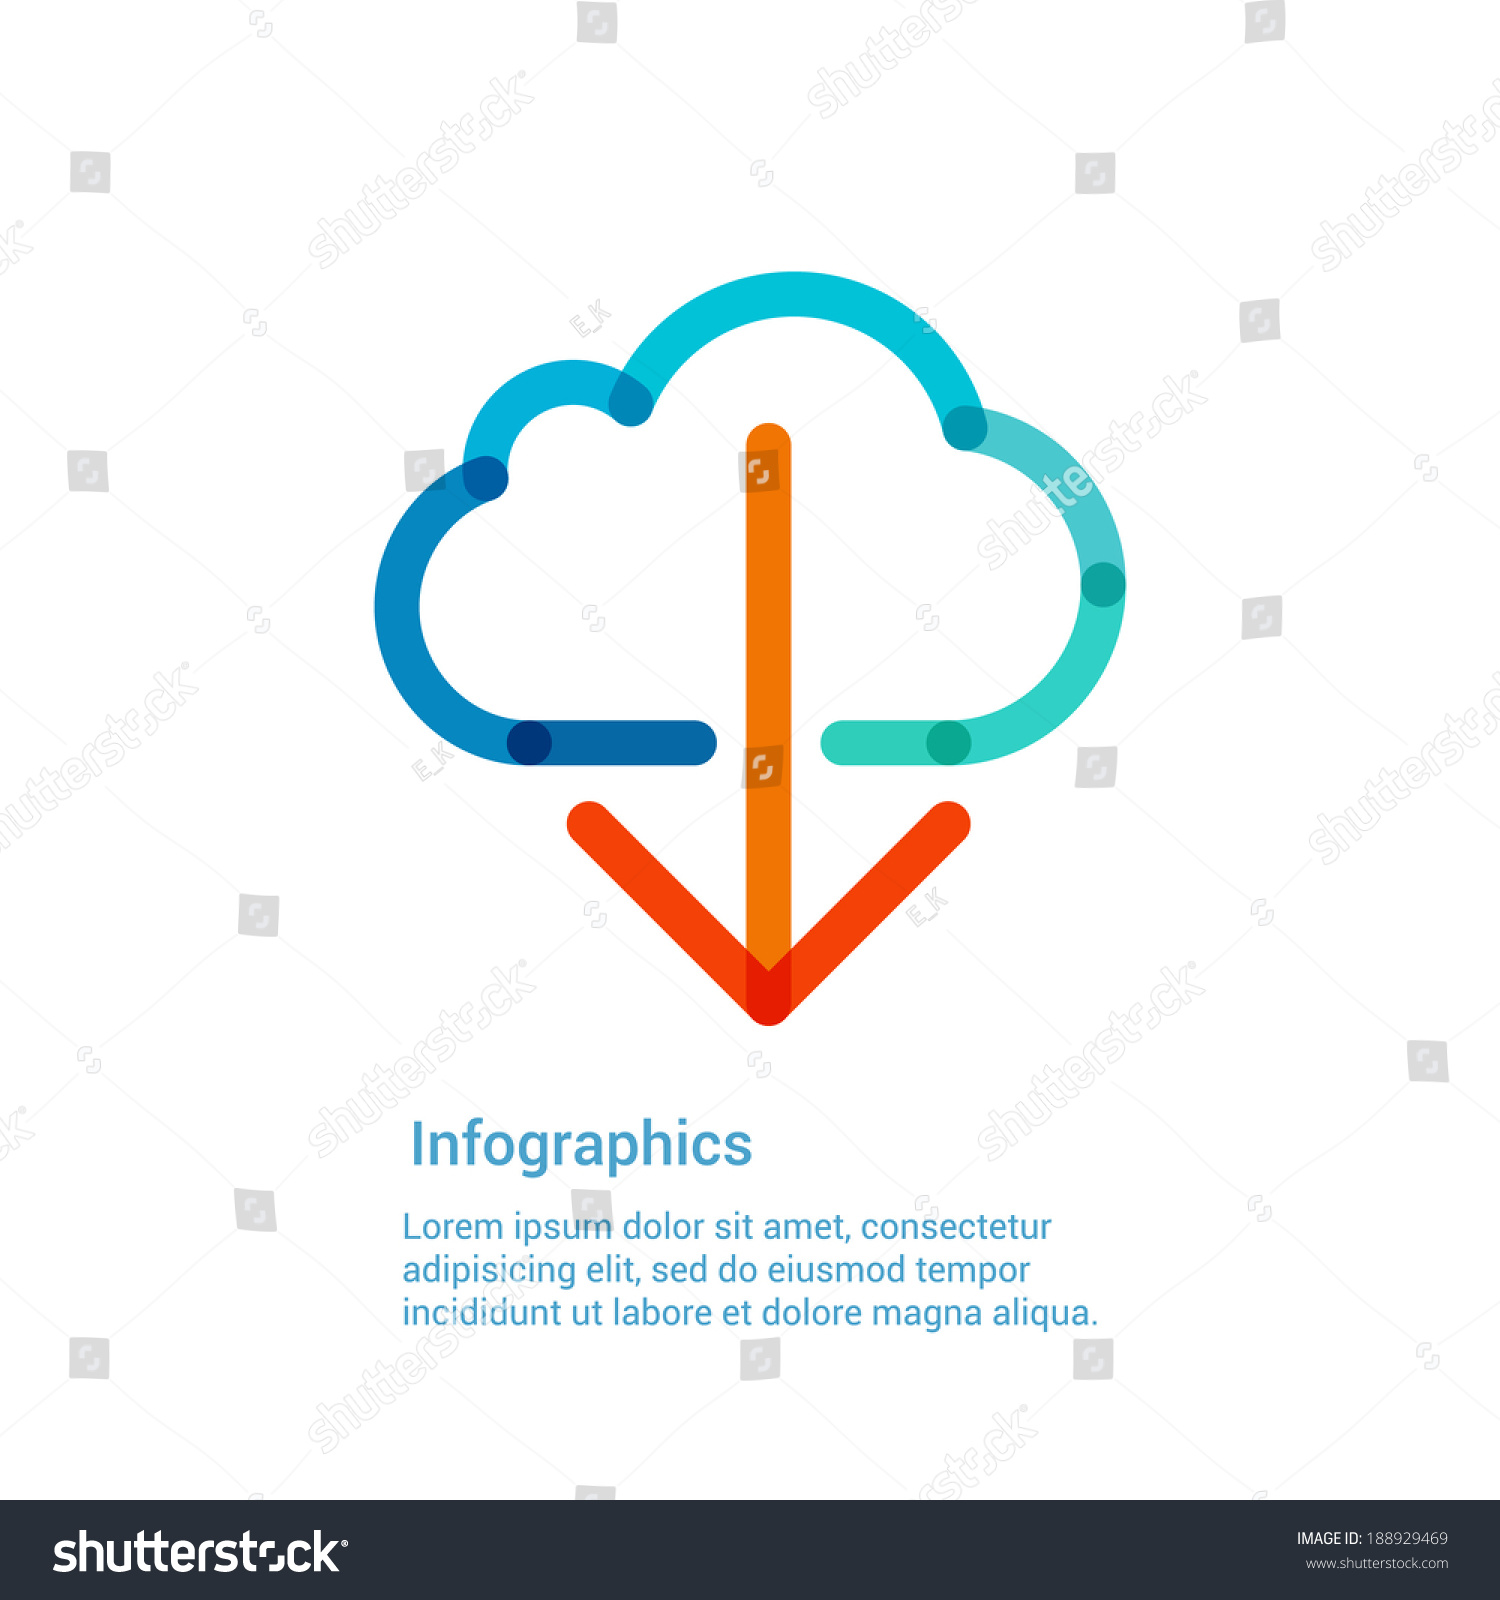 cloud template with lines - download from the internet cloud flat line icon